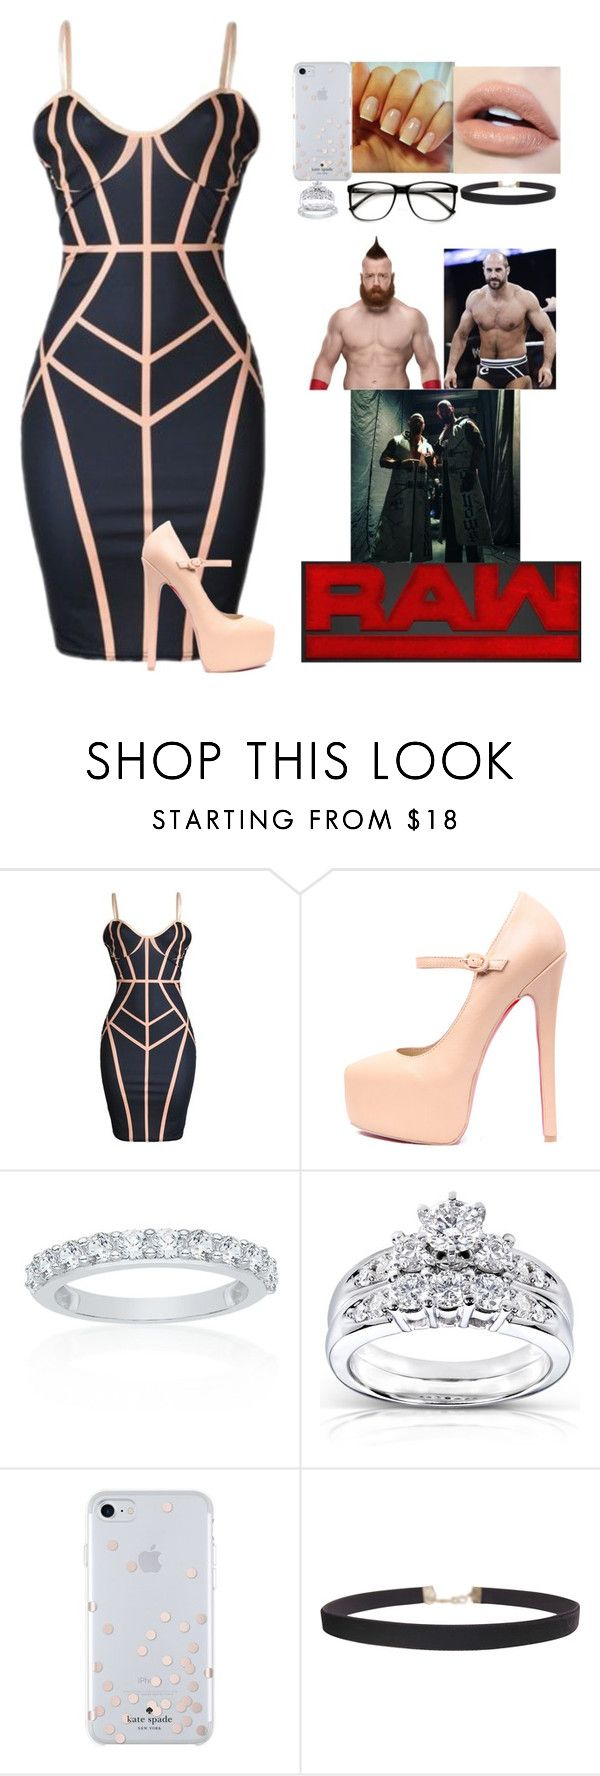 """Monday Night Raw (Tag Team Championship rematch)"" by xxxladiidxxx ❤ liked on Polyvore featuring Belk & Co., Kobelli, Kate Spade, Humble Chic, ZeroUV and WWE"